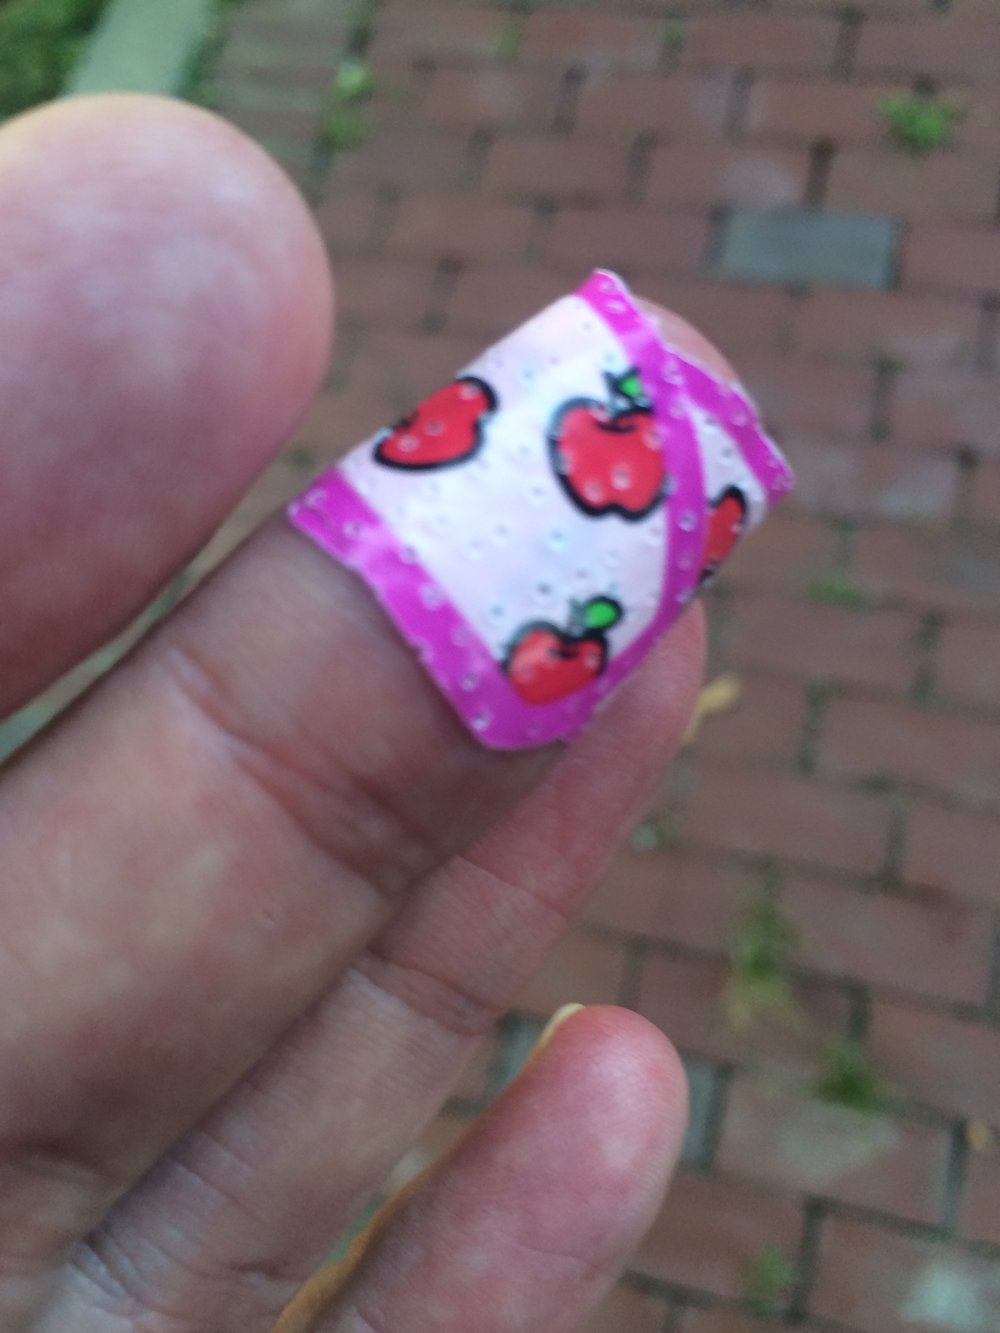 Ouch! A Hello Kitty band-aid covers a minor injury.